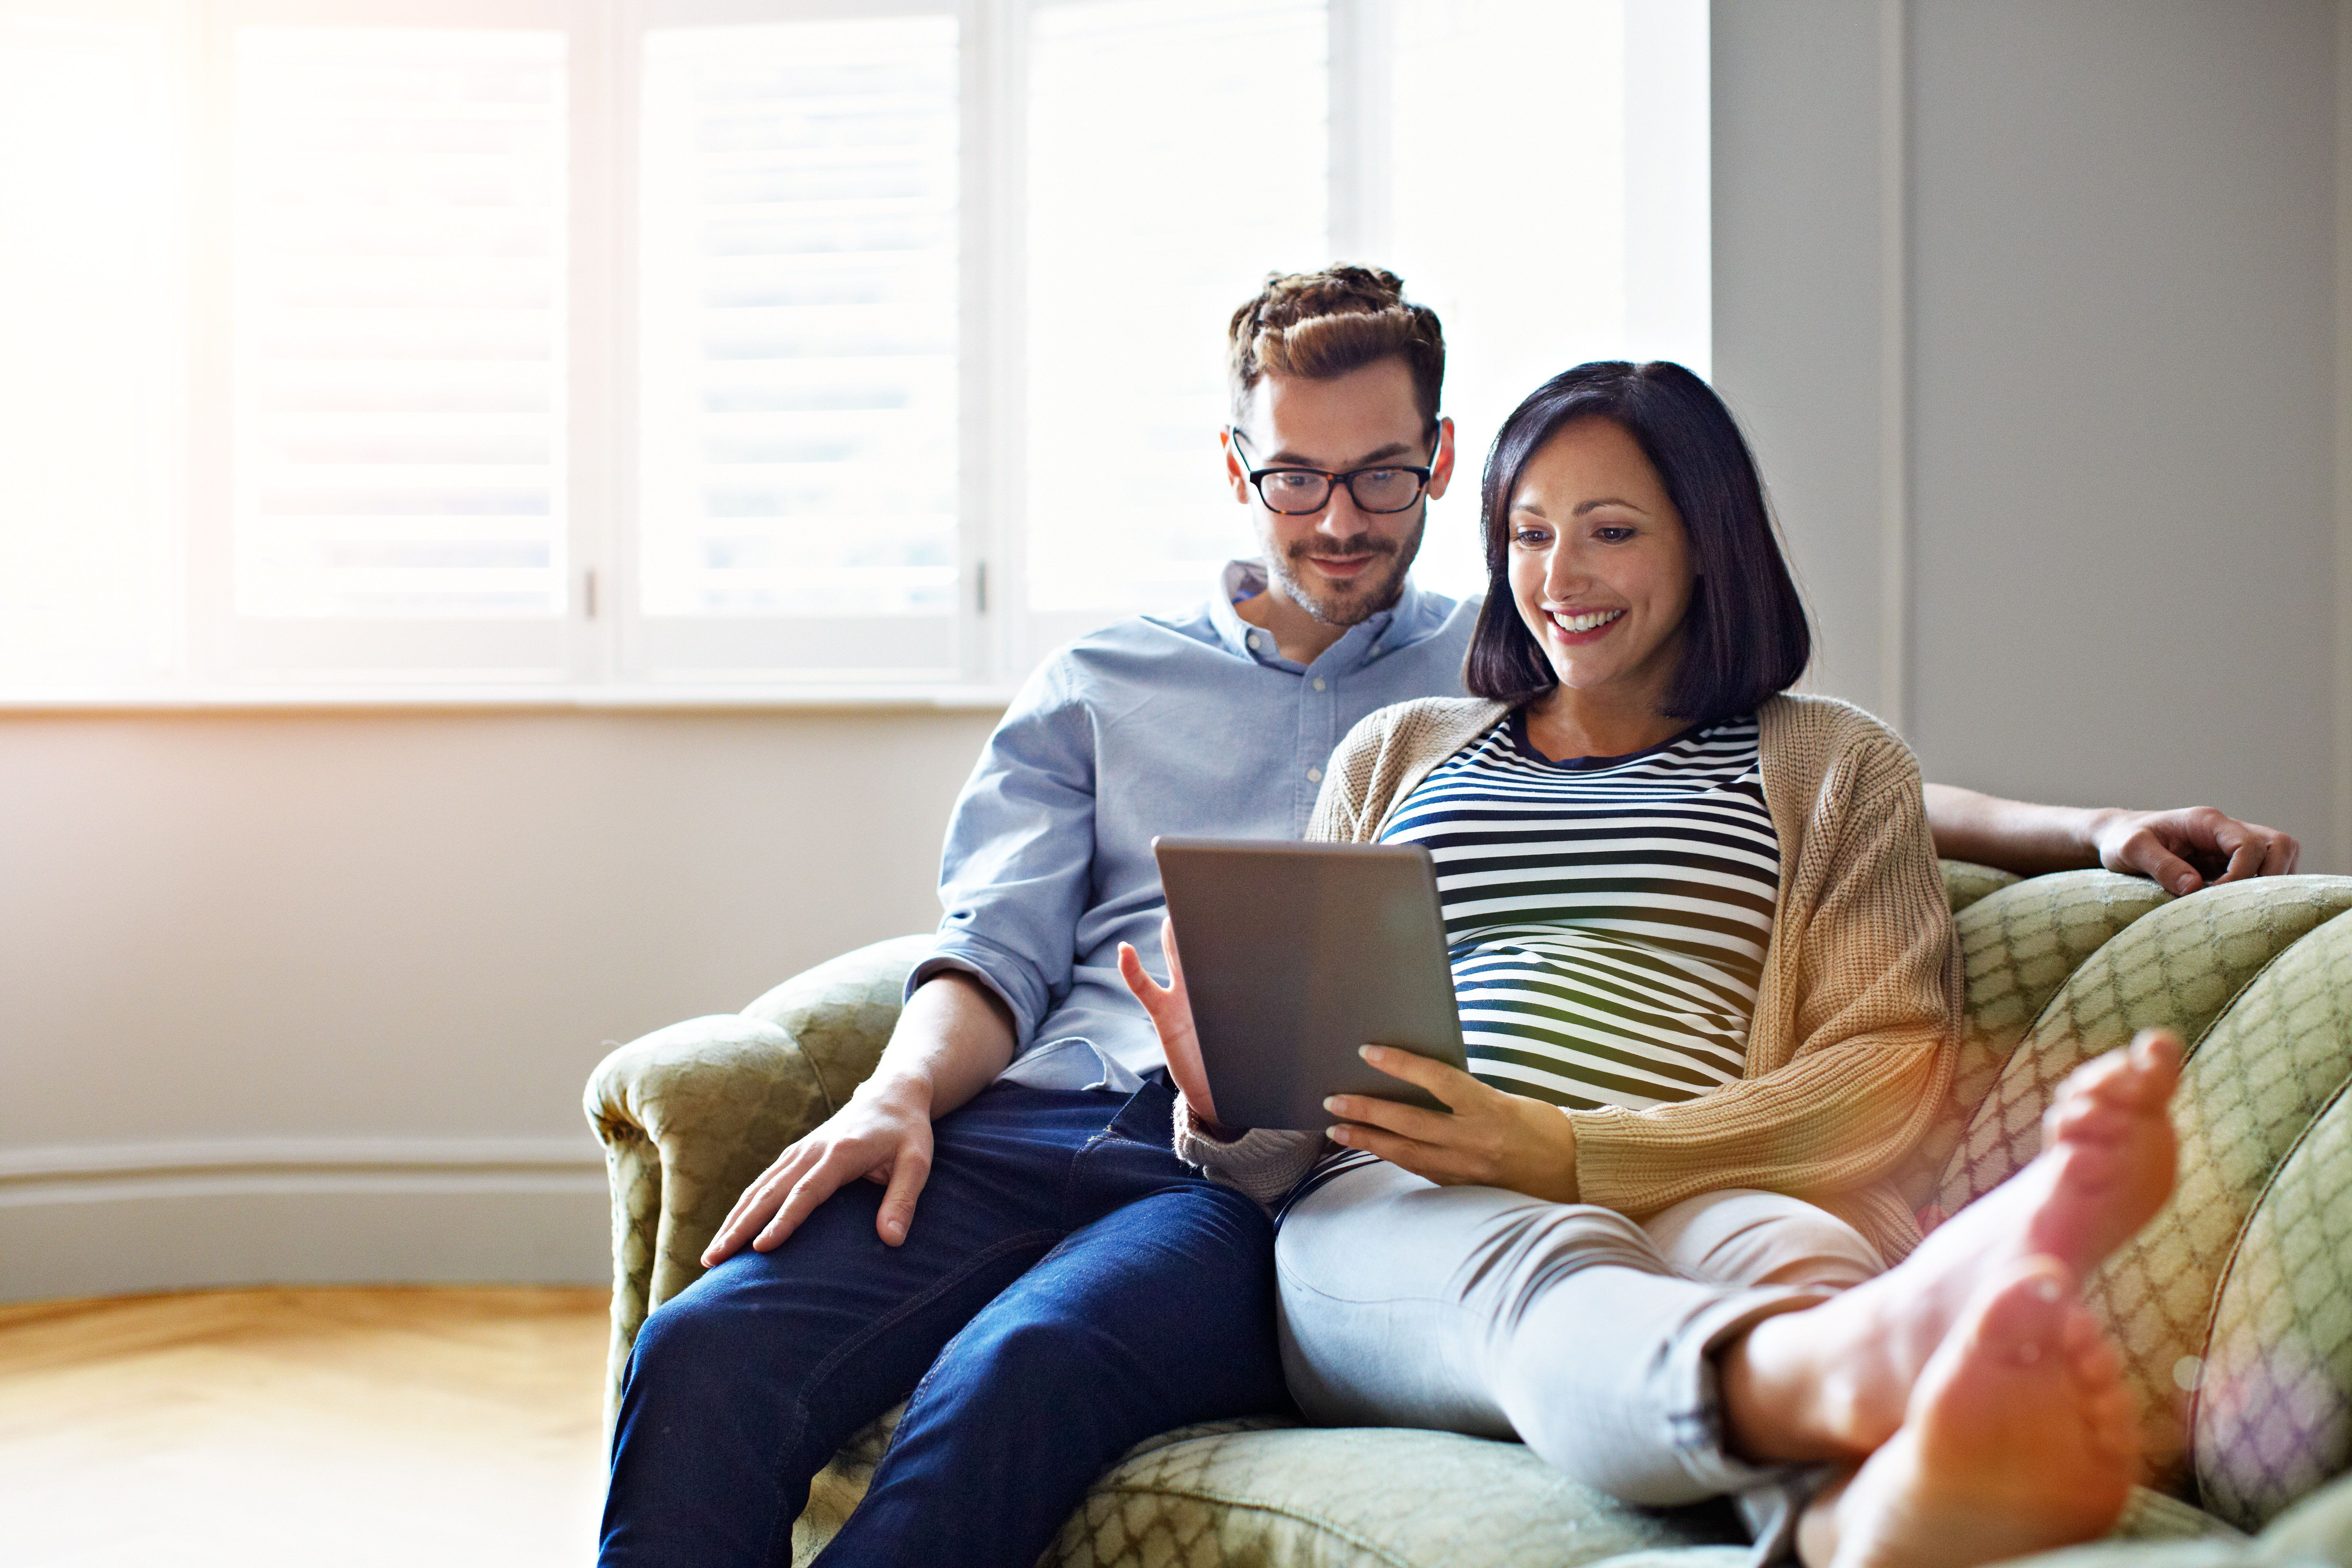 Shot of a pregnant woman and her husband sitting on their sofa using a digital tablet